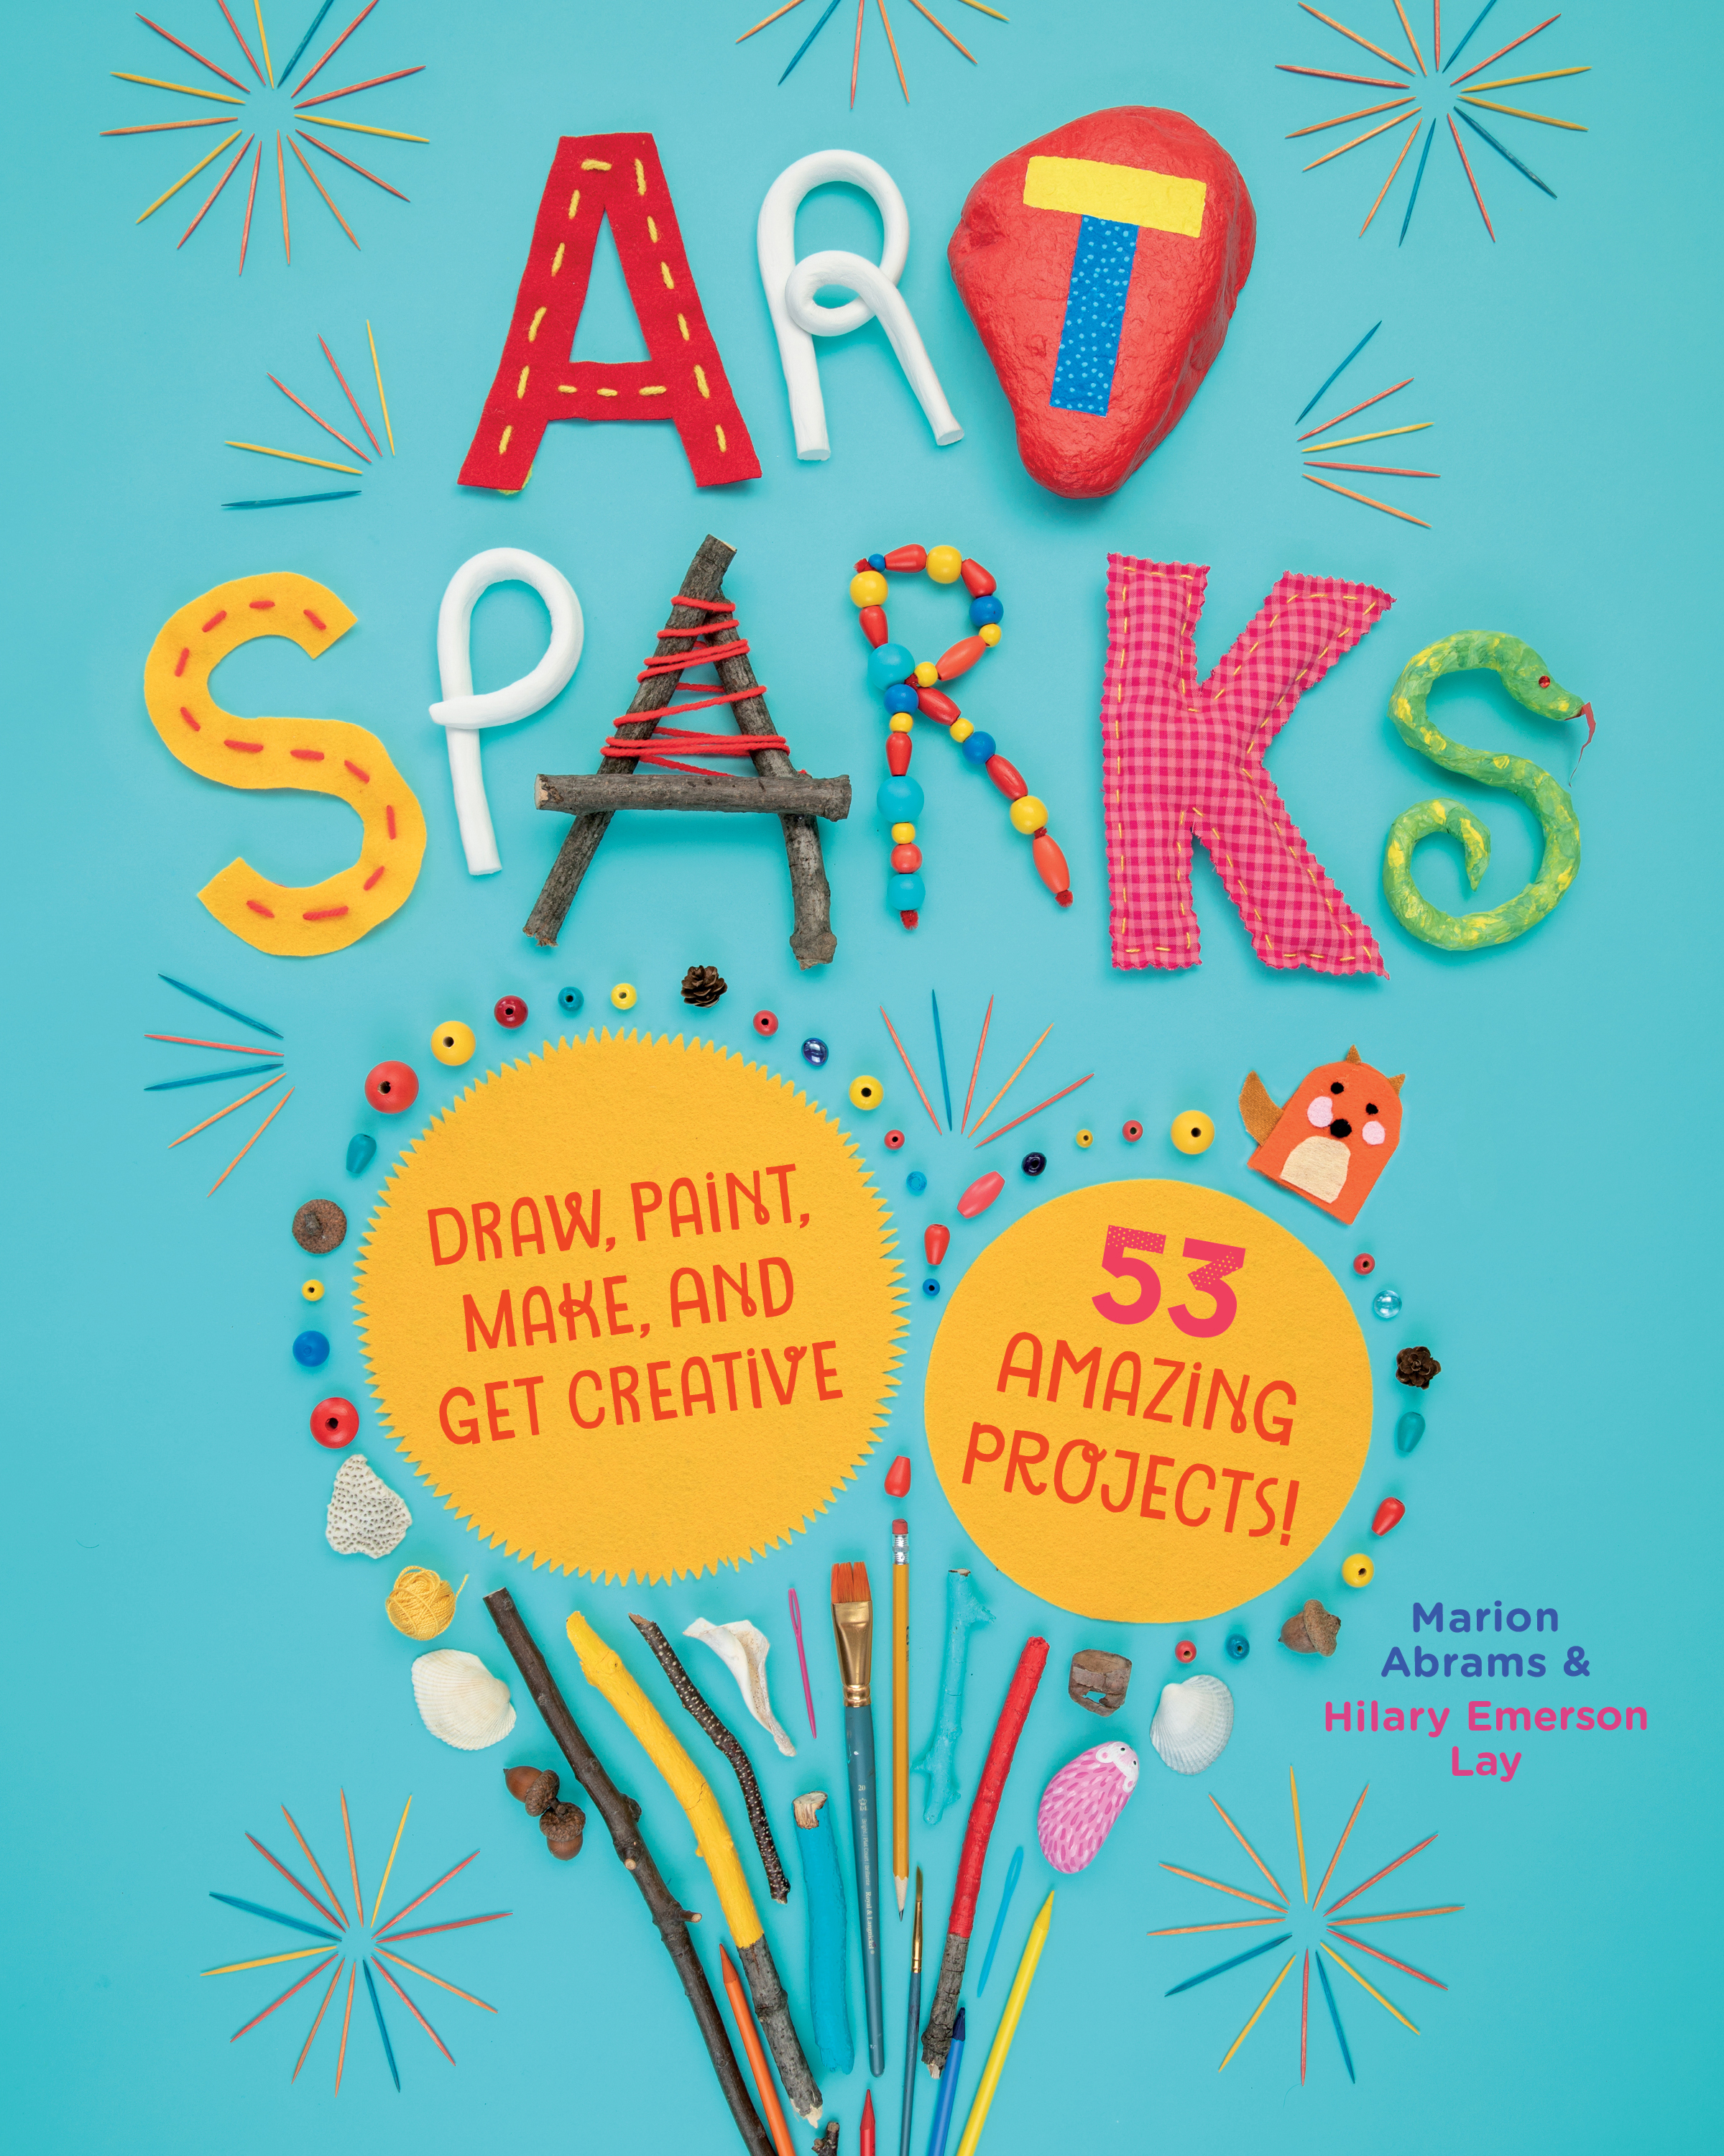 Art Sparks Draw, Paint, Make, and Get Creative with 53 Amazing Projects!